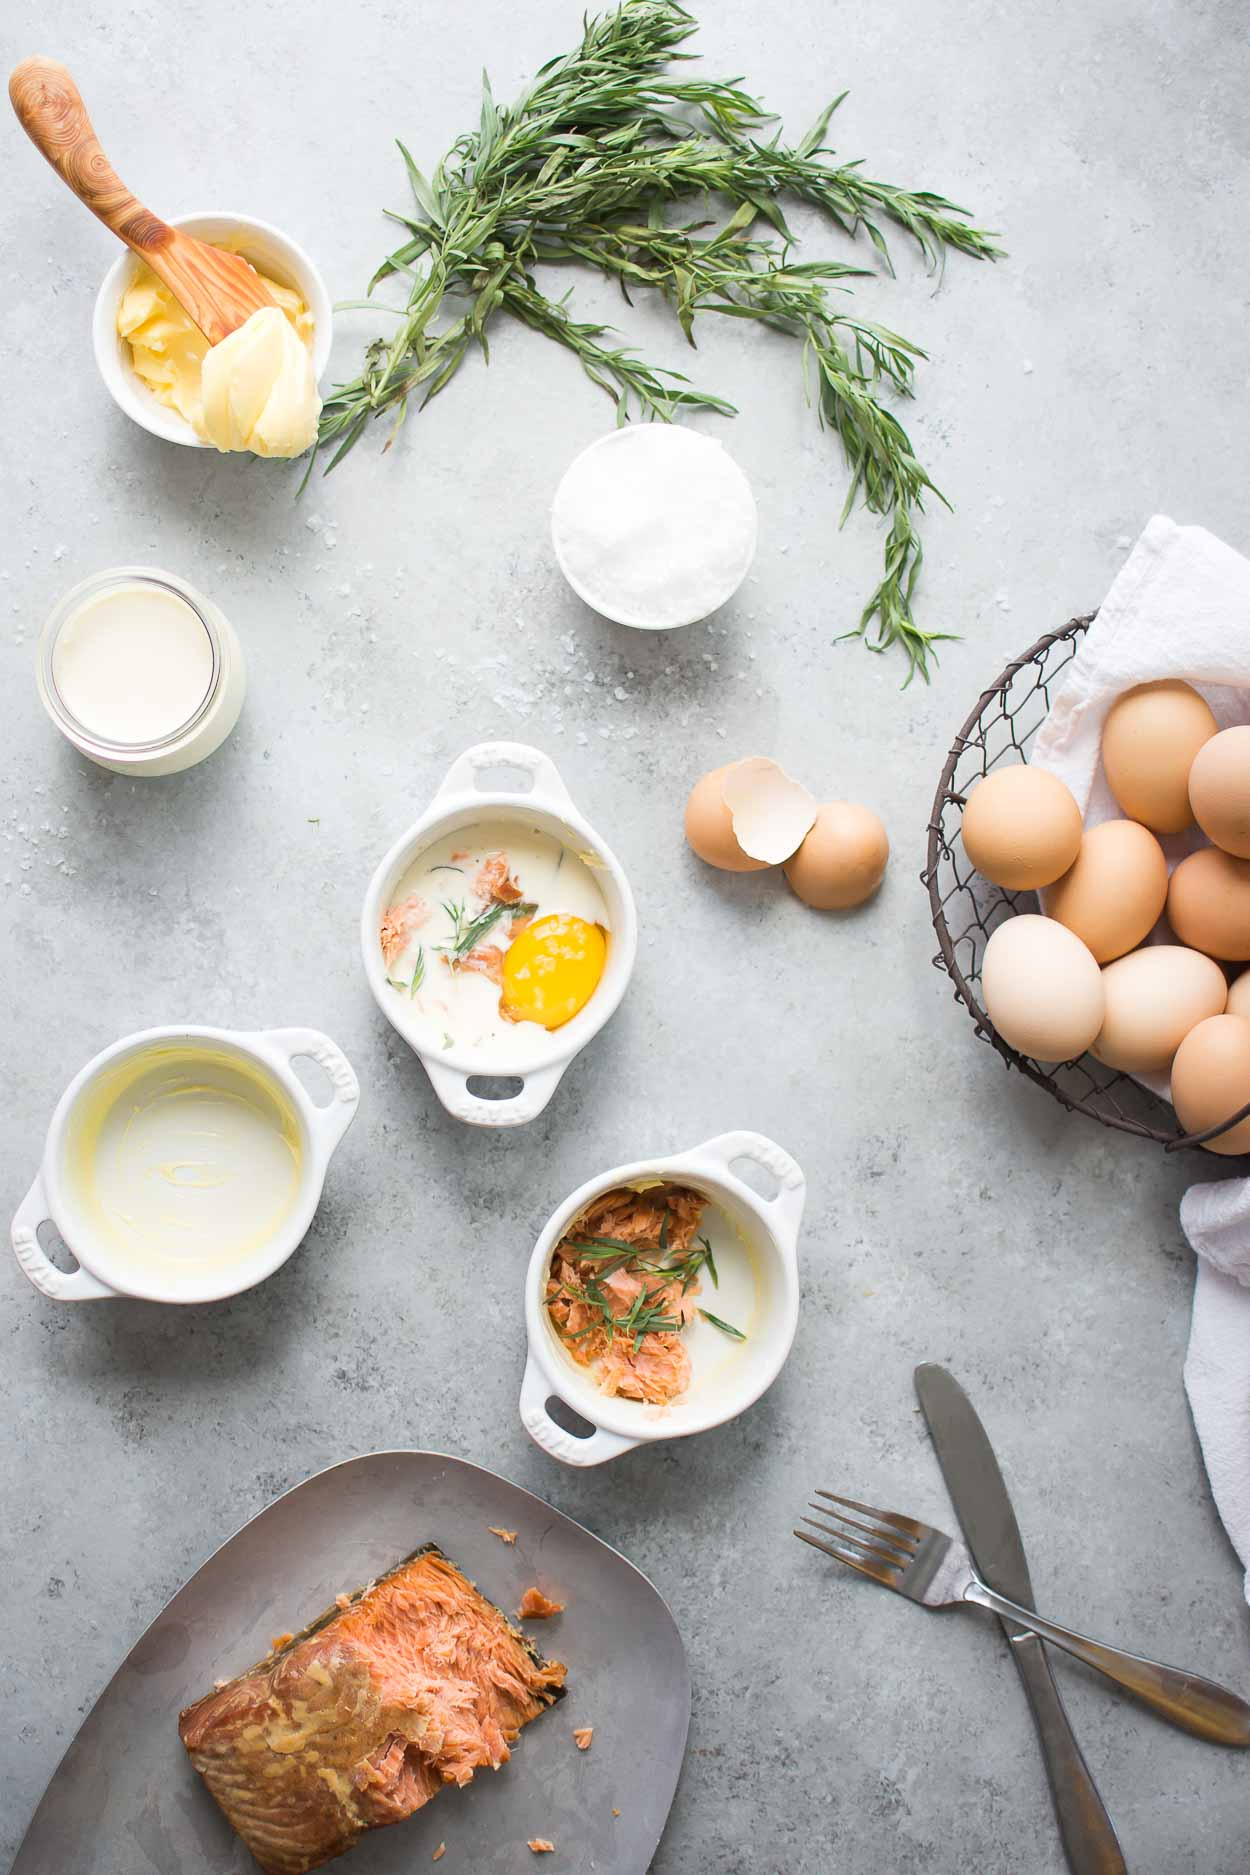 How to Make Baked Eggs with Smoked Salmon.